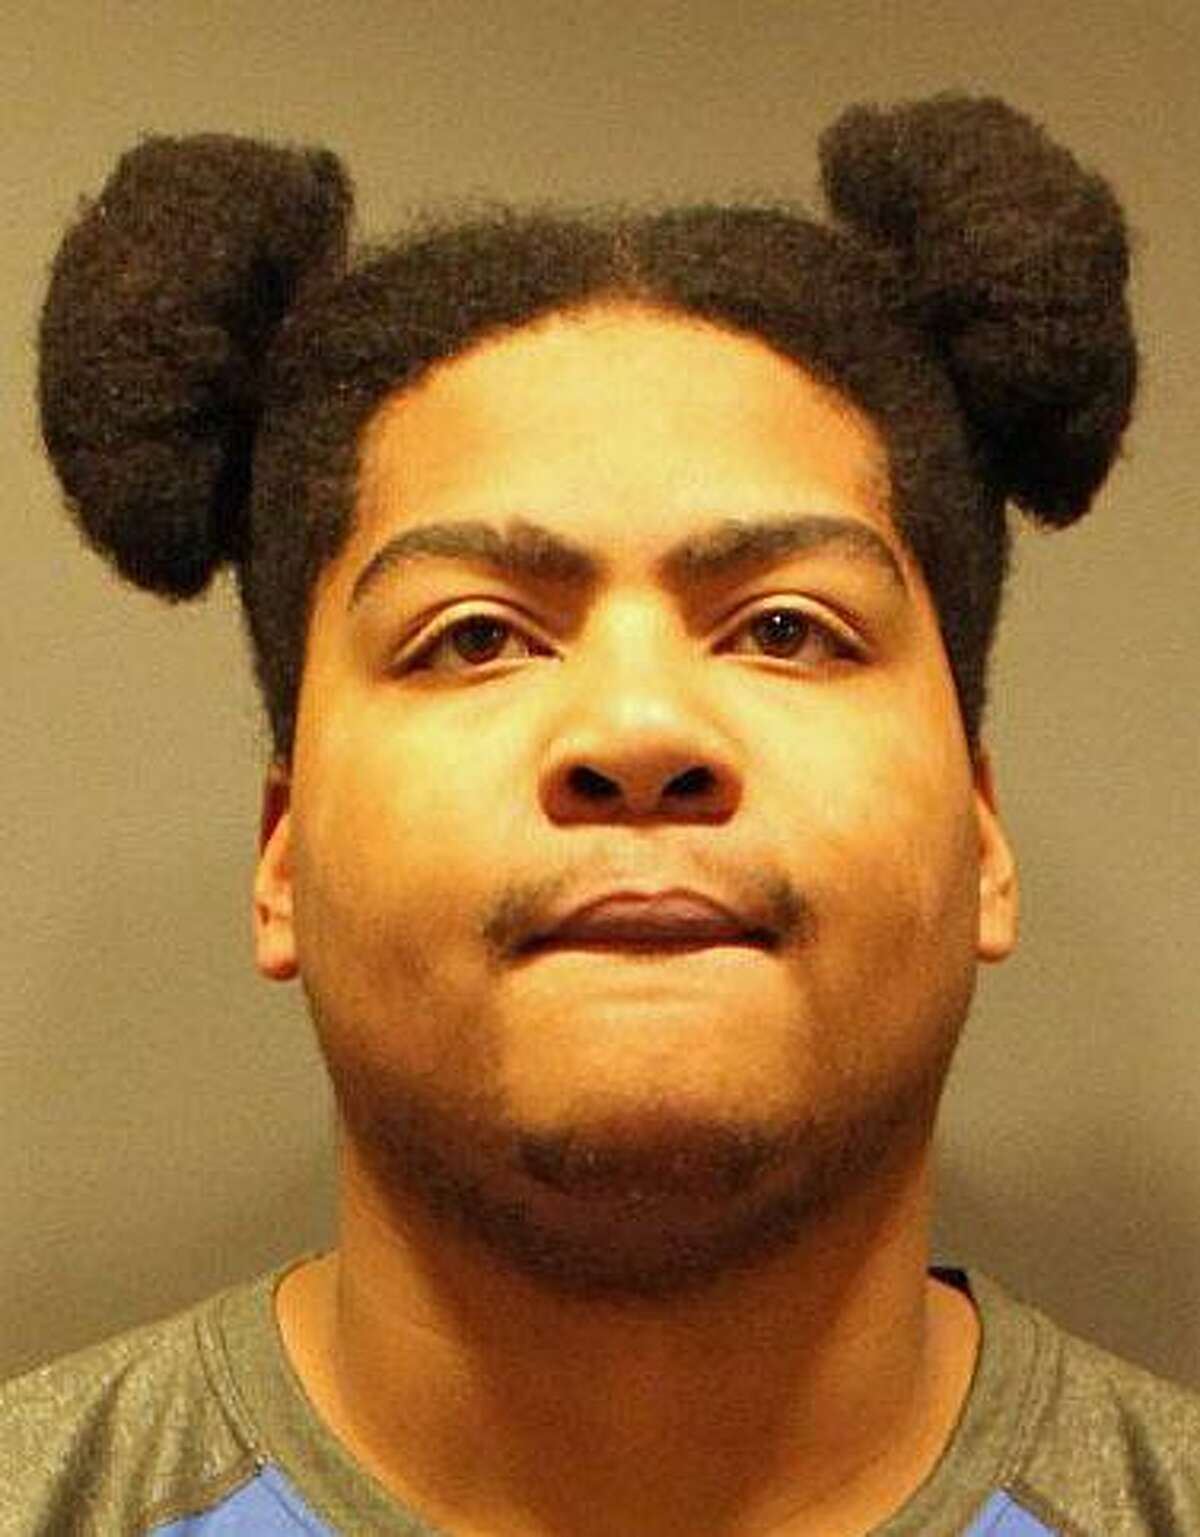 Police have arrested a 20-year-old Stratford man in connection with the shooting of a teenager playing basketball last August. On Thursday, Feb. 14, 2019 Jacques Smith was arrested on a warrant charging him with first-degree assault, reckless endangerment, having a weapon in a motor vehicle, criminal possession of a firearm, criminal possession of ammunition and carrying a pistol without a permit.